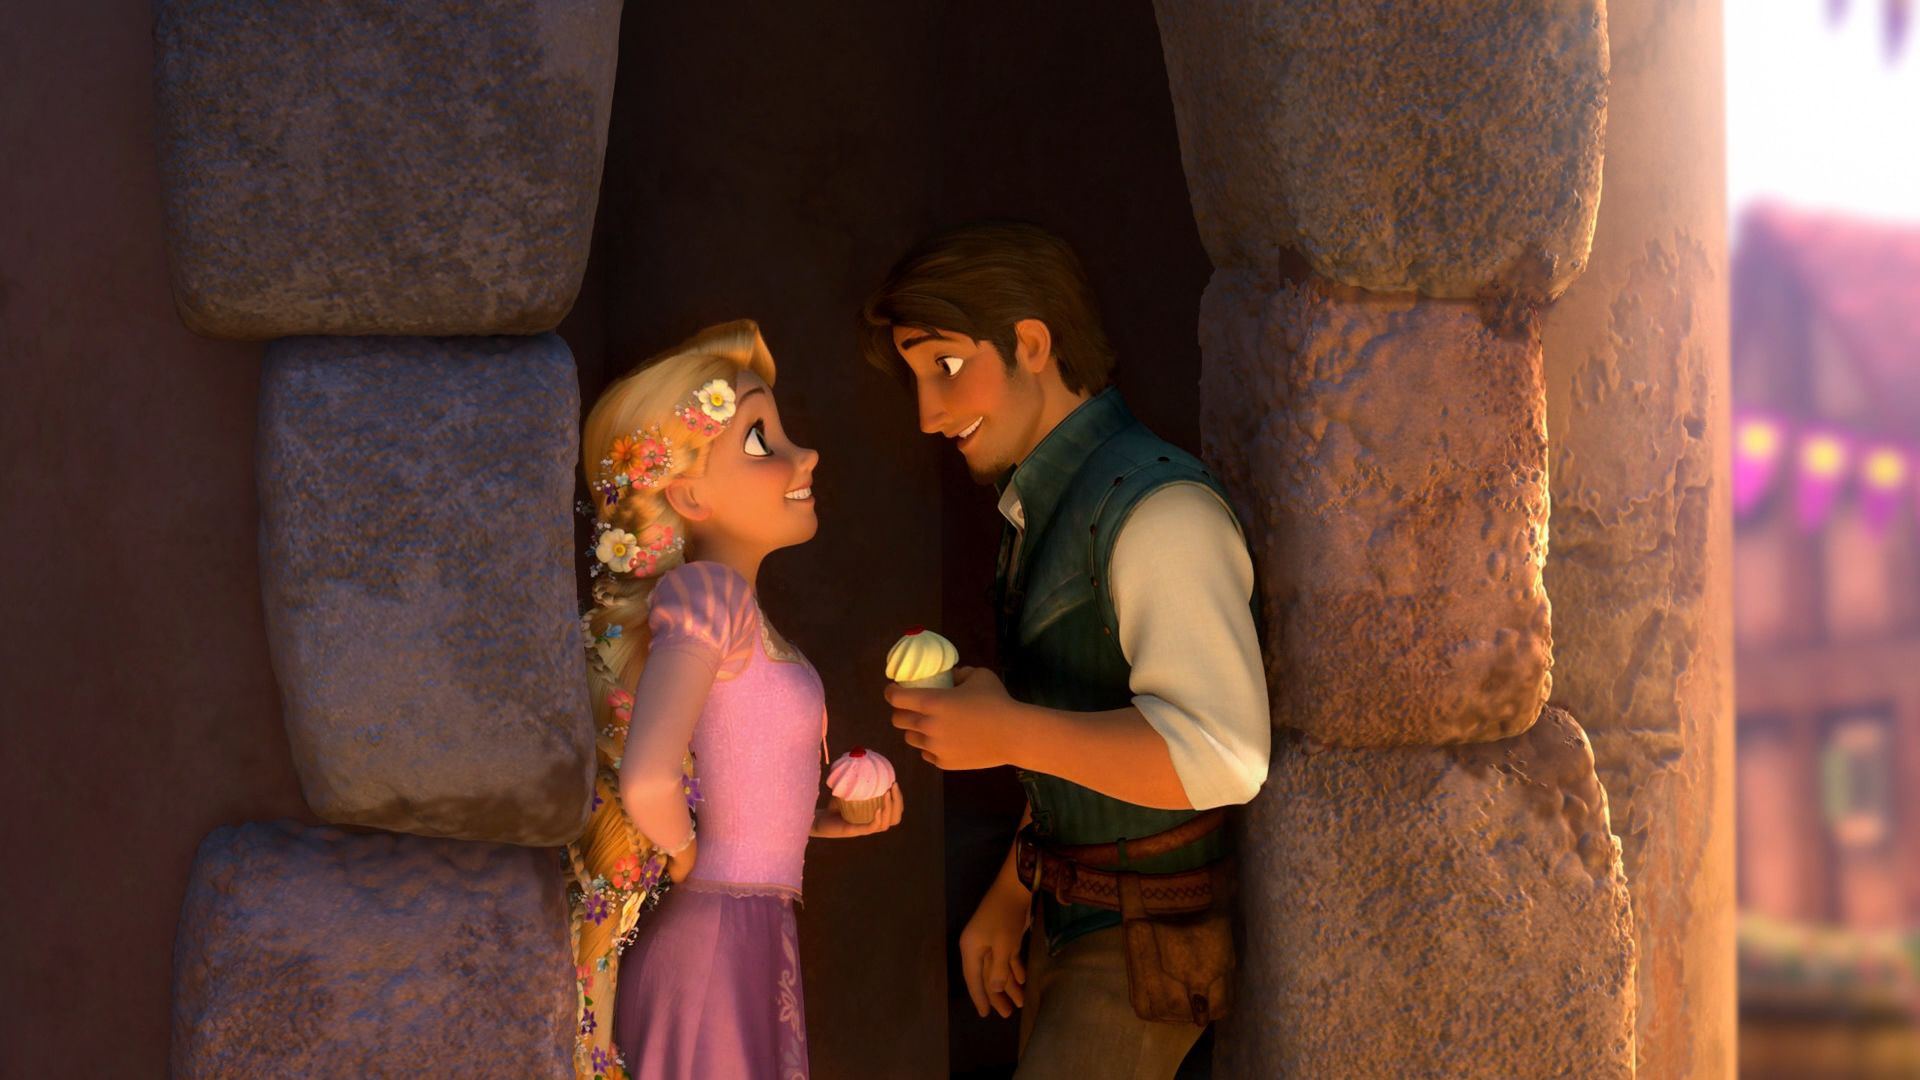 Tangled Image Flynn And Rapunzel 4ever Love Disney Enredados Rapunzel Disney Disney Imagenes